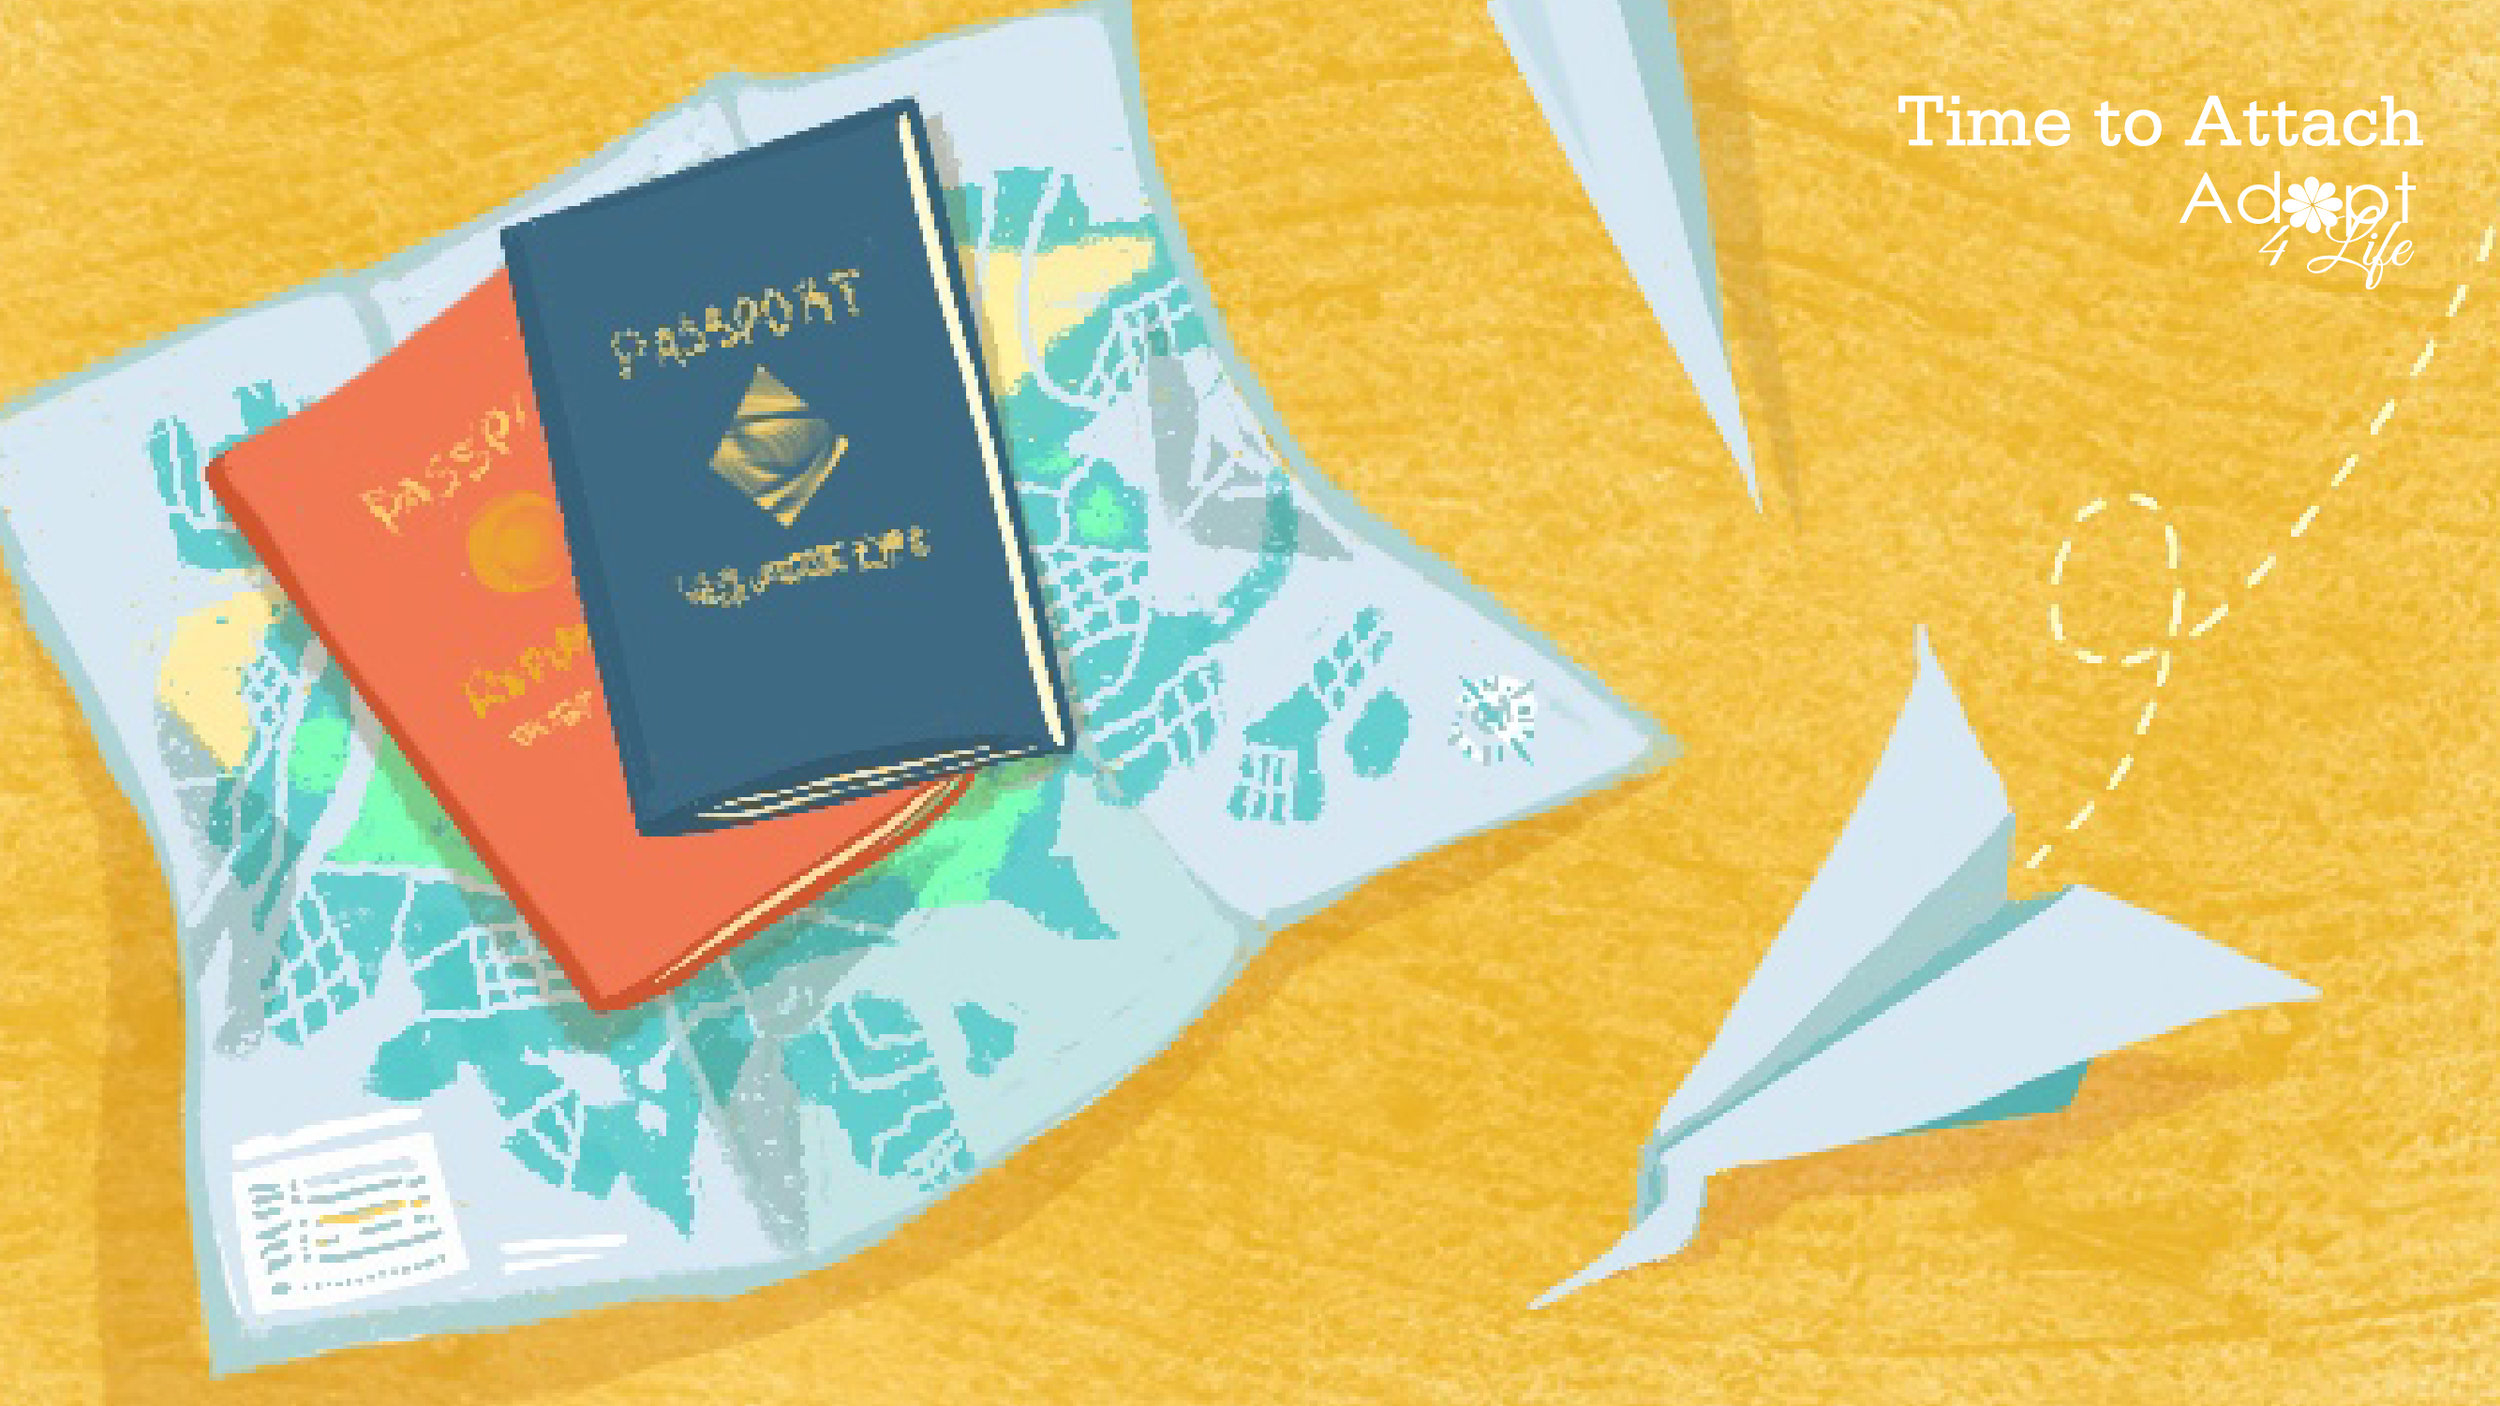 TTA_a4l_022019_passport.jpg